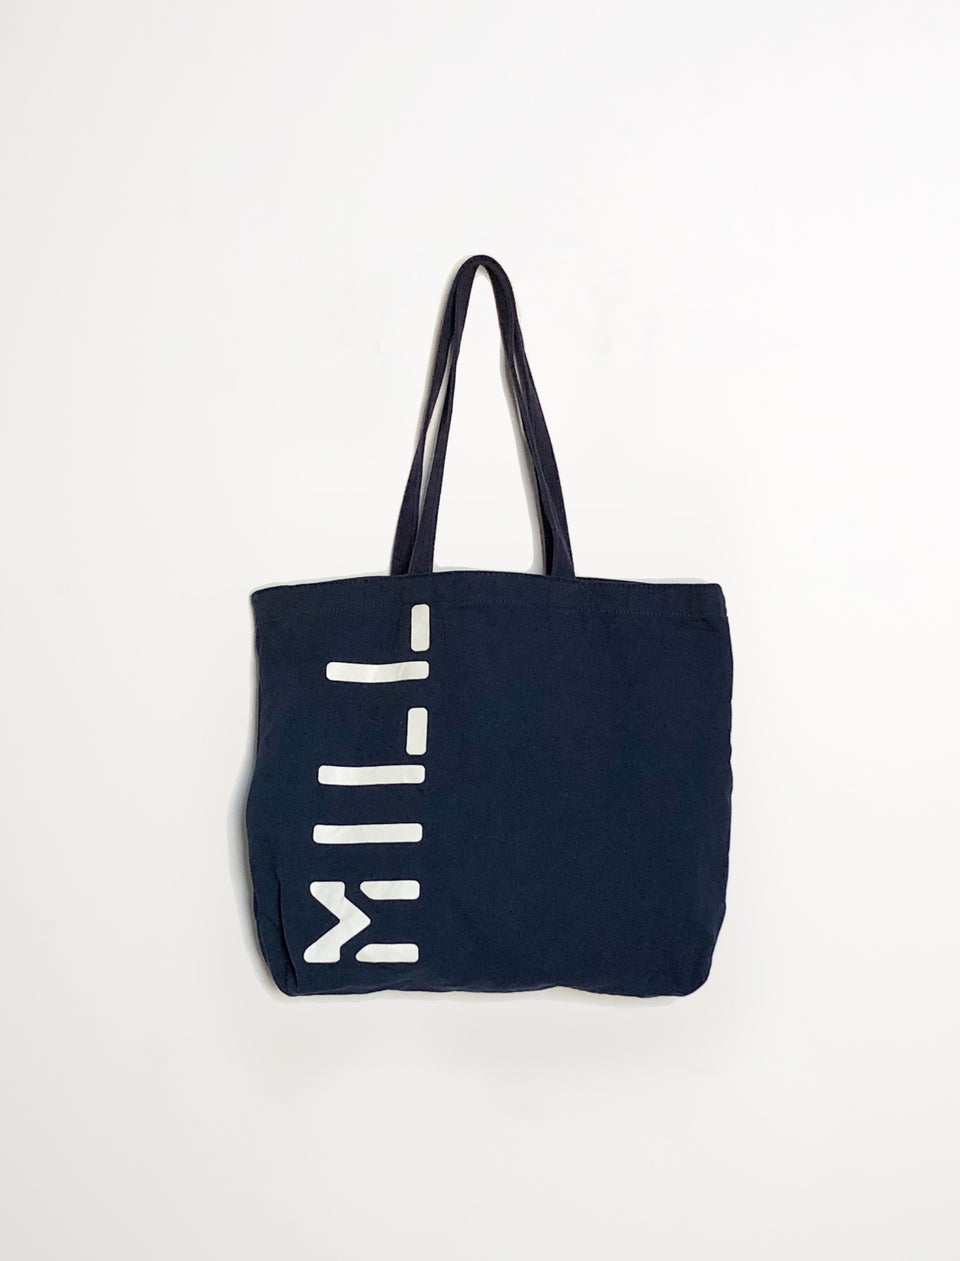 AM Canvas Tote Bag